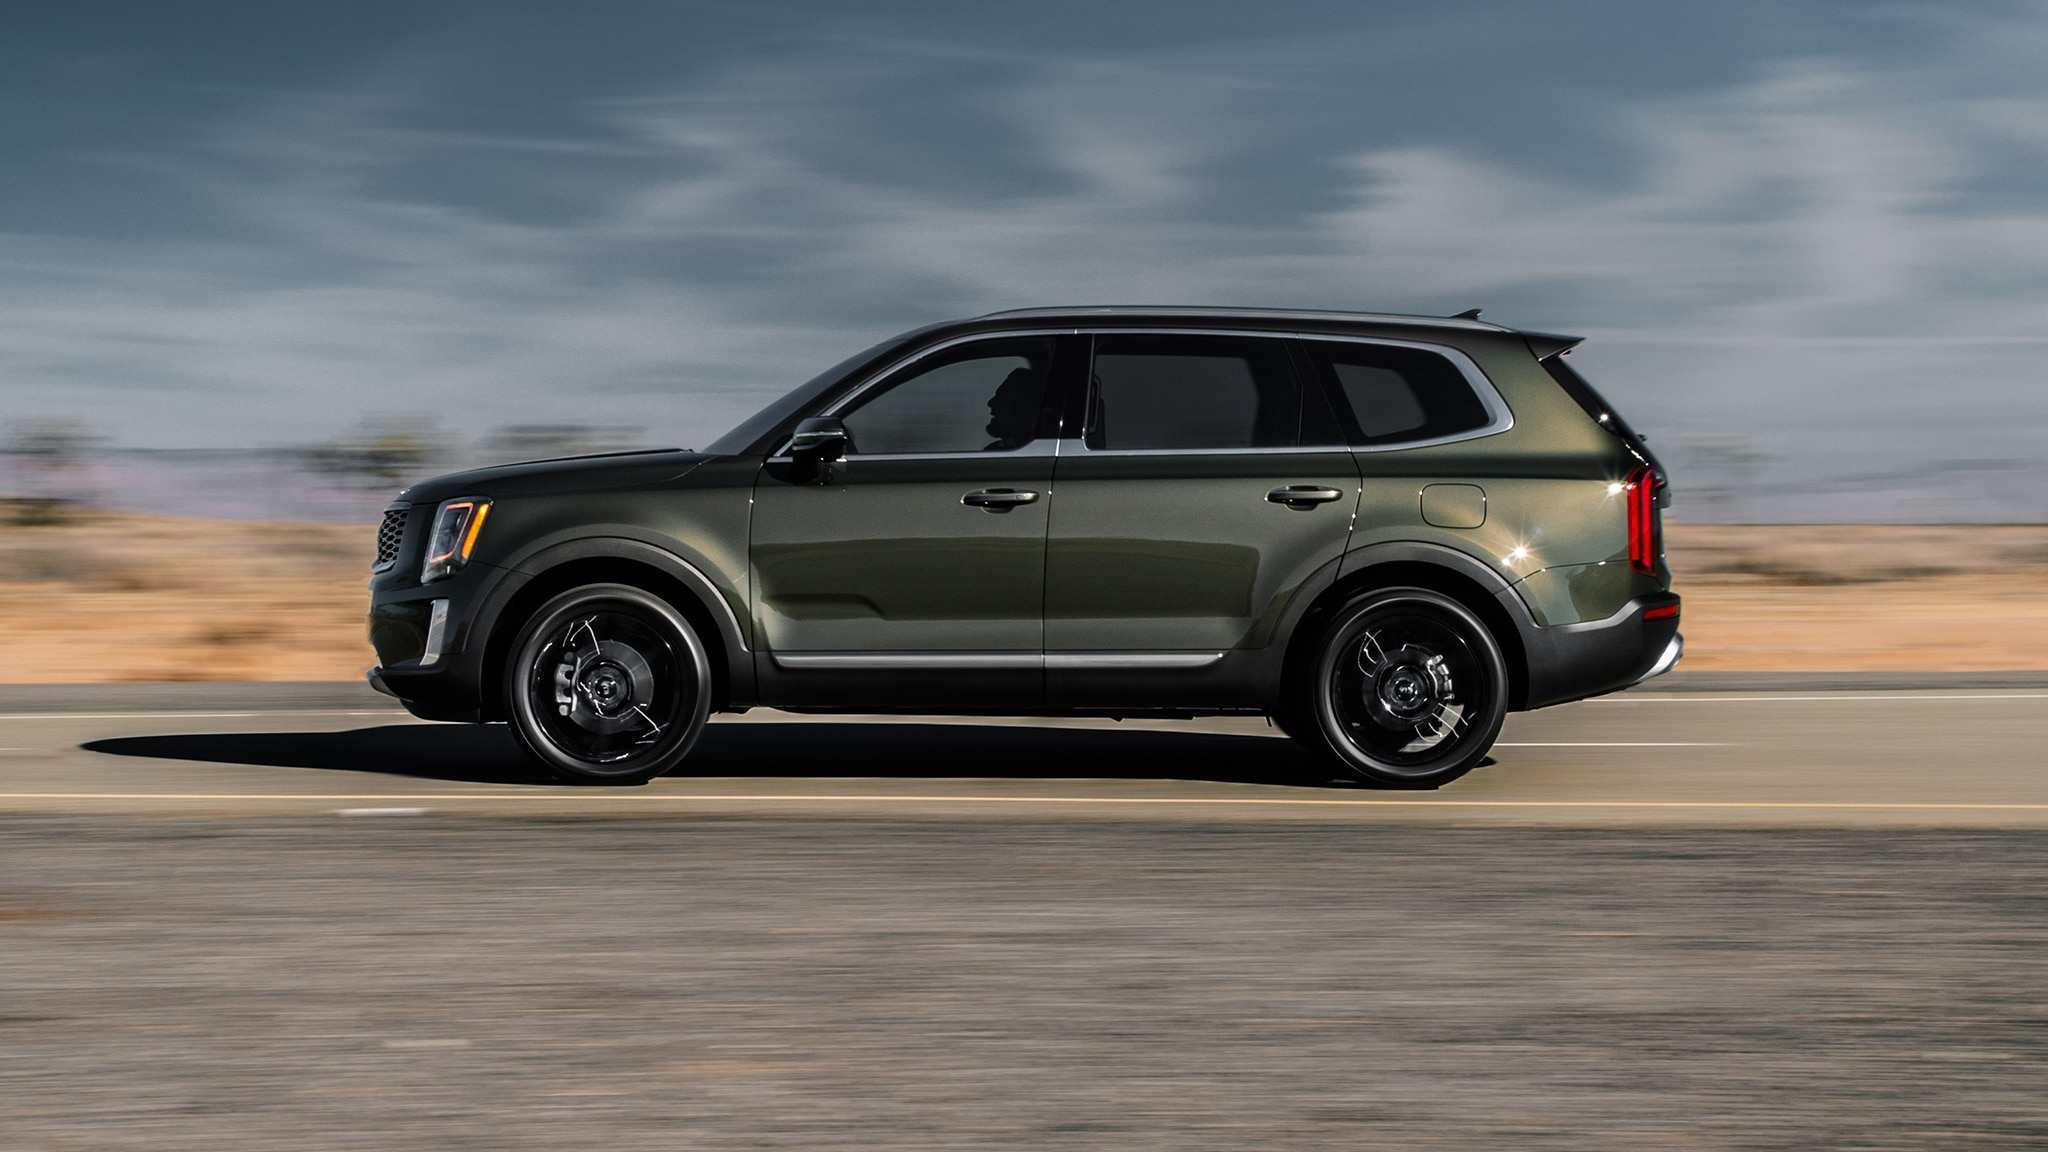 78 The Kia Telluride 2020 Mpg Price Design And Review